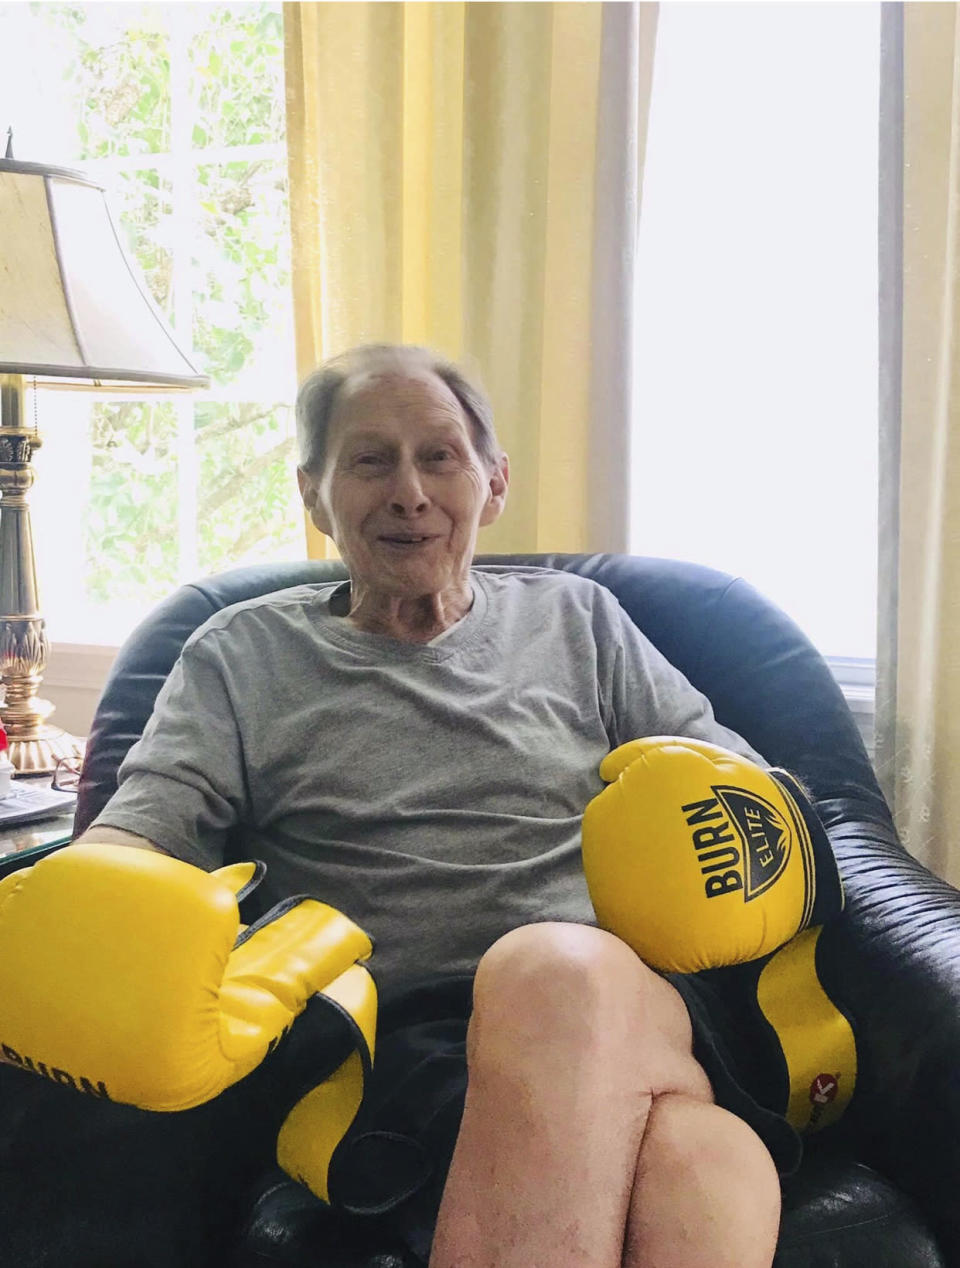 This Aug. 20, 2018 photo provided by Natalie Walters shows her father, Jack Walters, at his home in Syracuse, N.Y. Jack, who was staying at the Loretto Health and Rehabilitation nursing home in Syracuse, died of COVID-19 in December 2020. The facility's staffing has declined during the pandemic and Natalie wonders if poor staffing played a role in her father's infection or death. (Natalie Walters via AP)